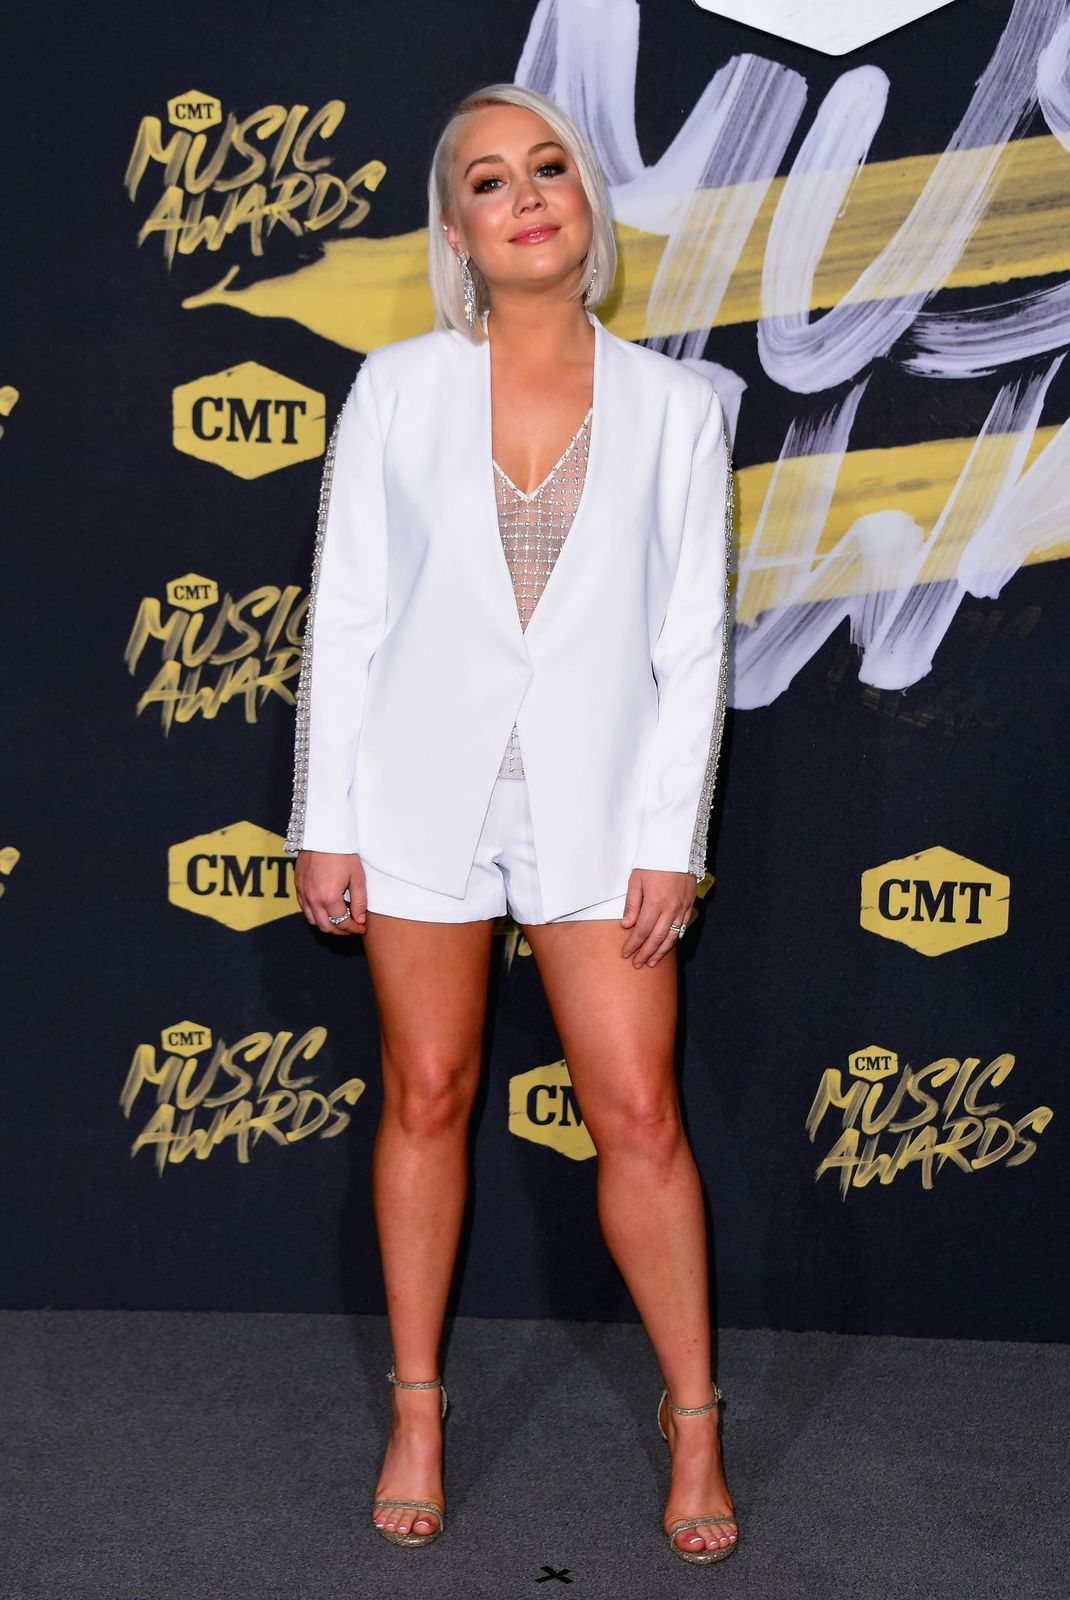 RaeLynn attends the 2018 CMT Music Awards at Bridgestone Arena on June 6, 2018 | Getty Images